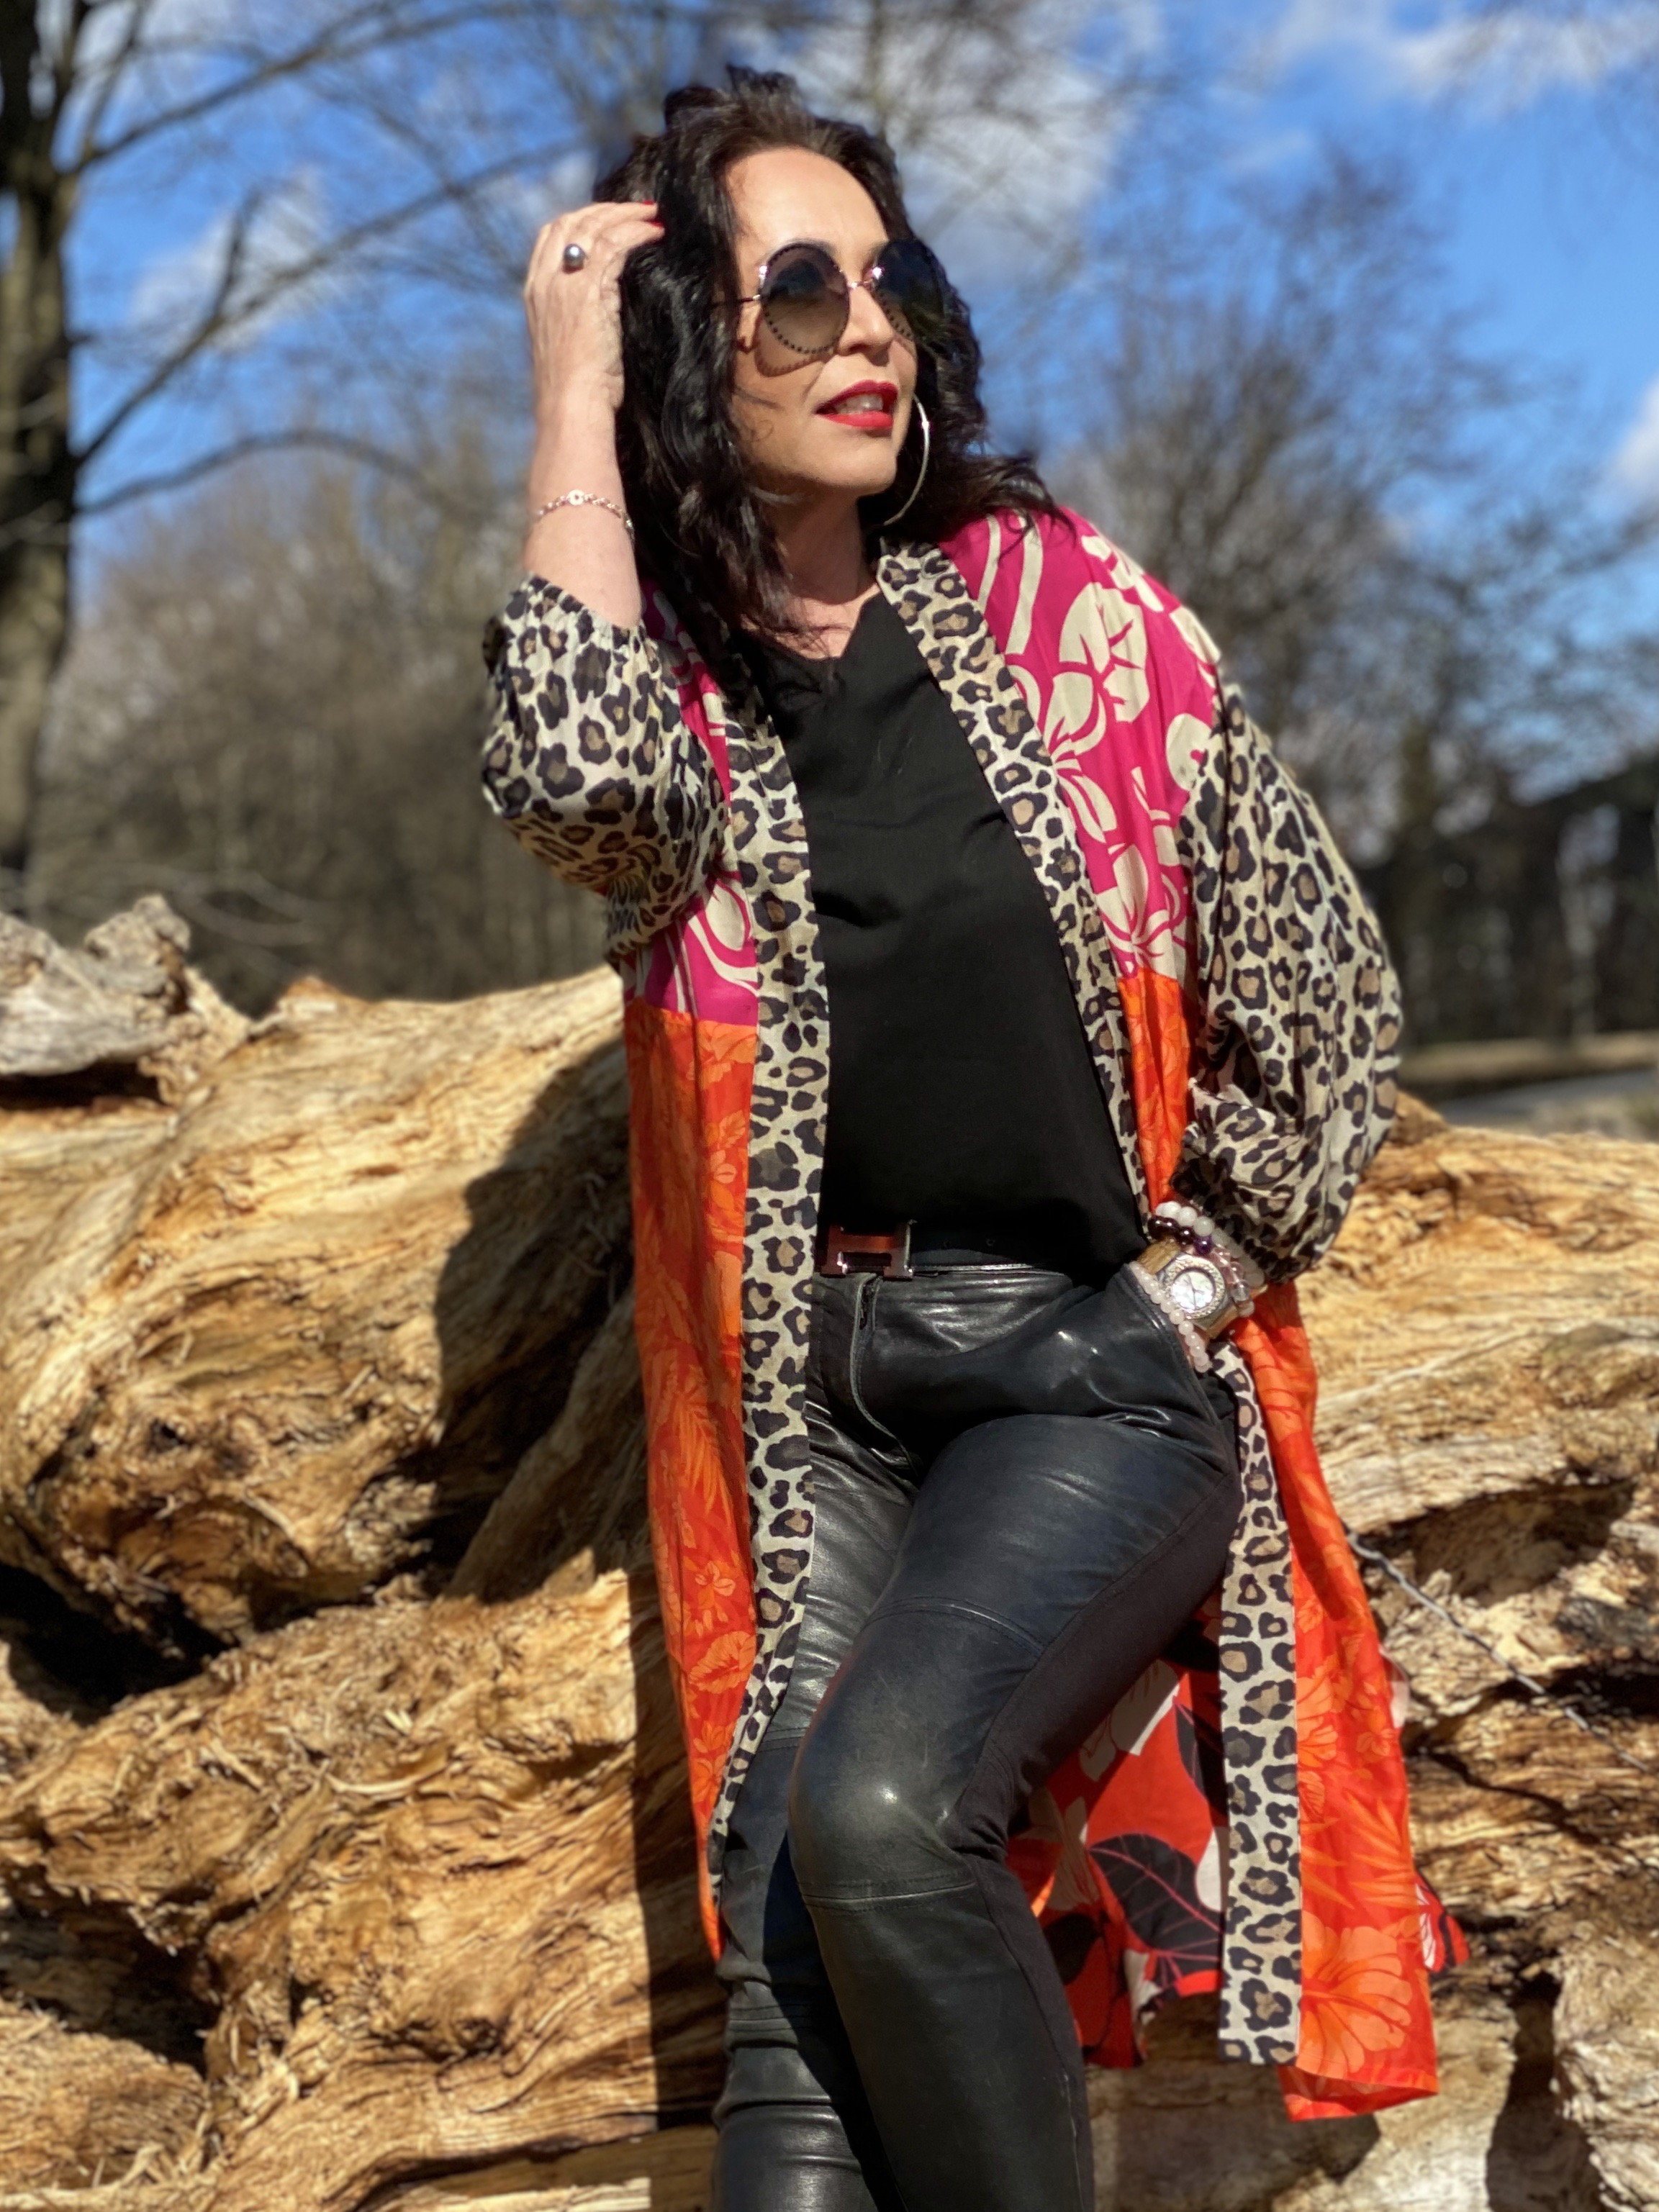 Colorful Kimono, Grace fashion, Marc Jacobs shades, ageless fashion, ageless style, styleblogger, eyewearblogger, eyewearfashion, styleinspiration, leoprint, flowerprint, colors, jewelryblogger, Hermés belt, Moschino pants, leather pants, stylish, streetstyle, streetfashion, cochastyle